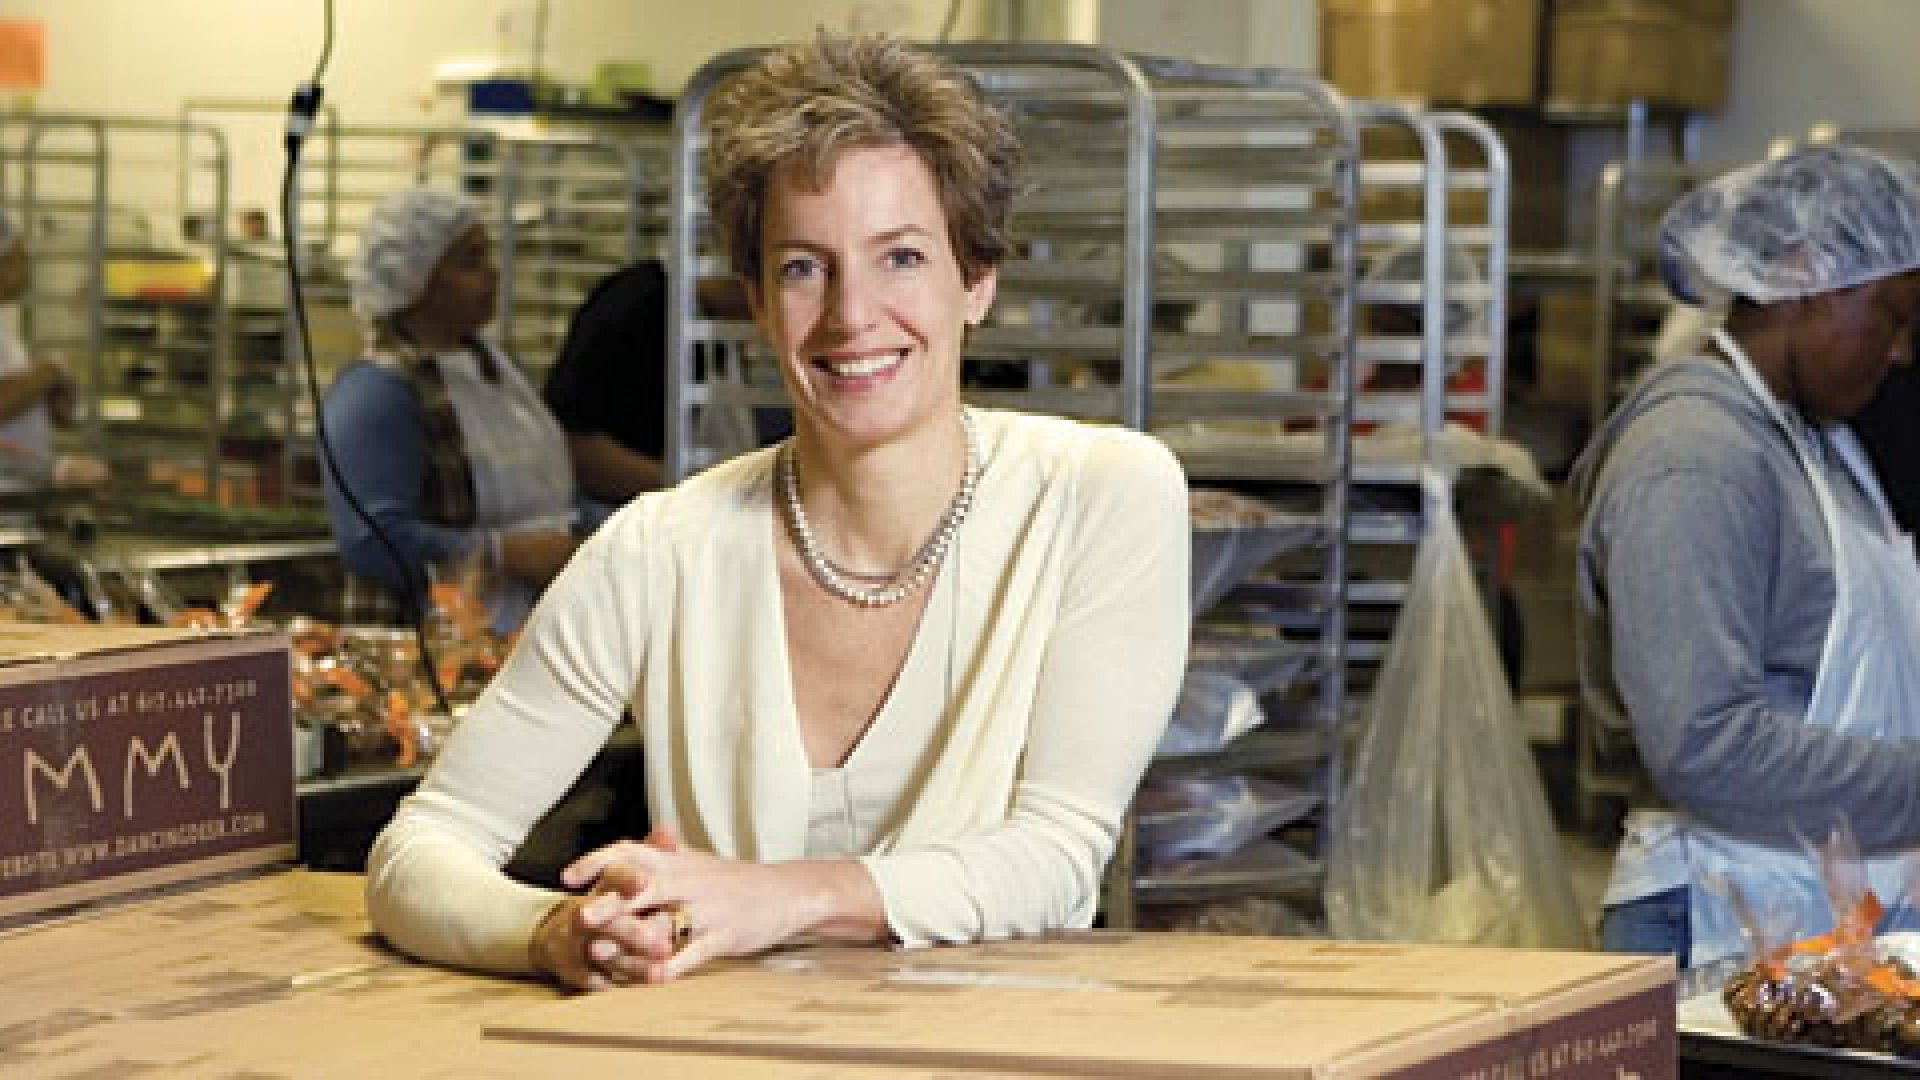 Trish Karter, CEO of Dancing Deer Baking Company, learned social responsibility from her father who helped pioneer industrial recycling.